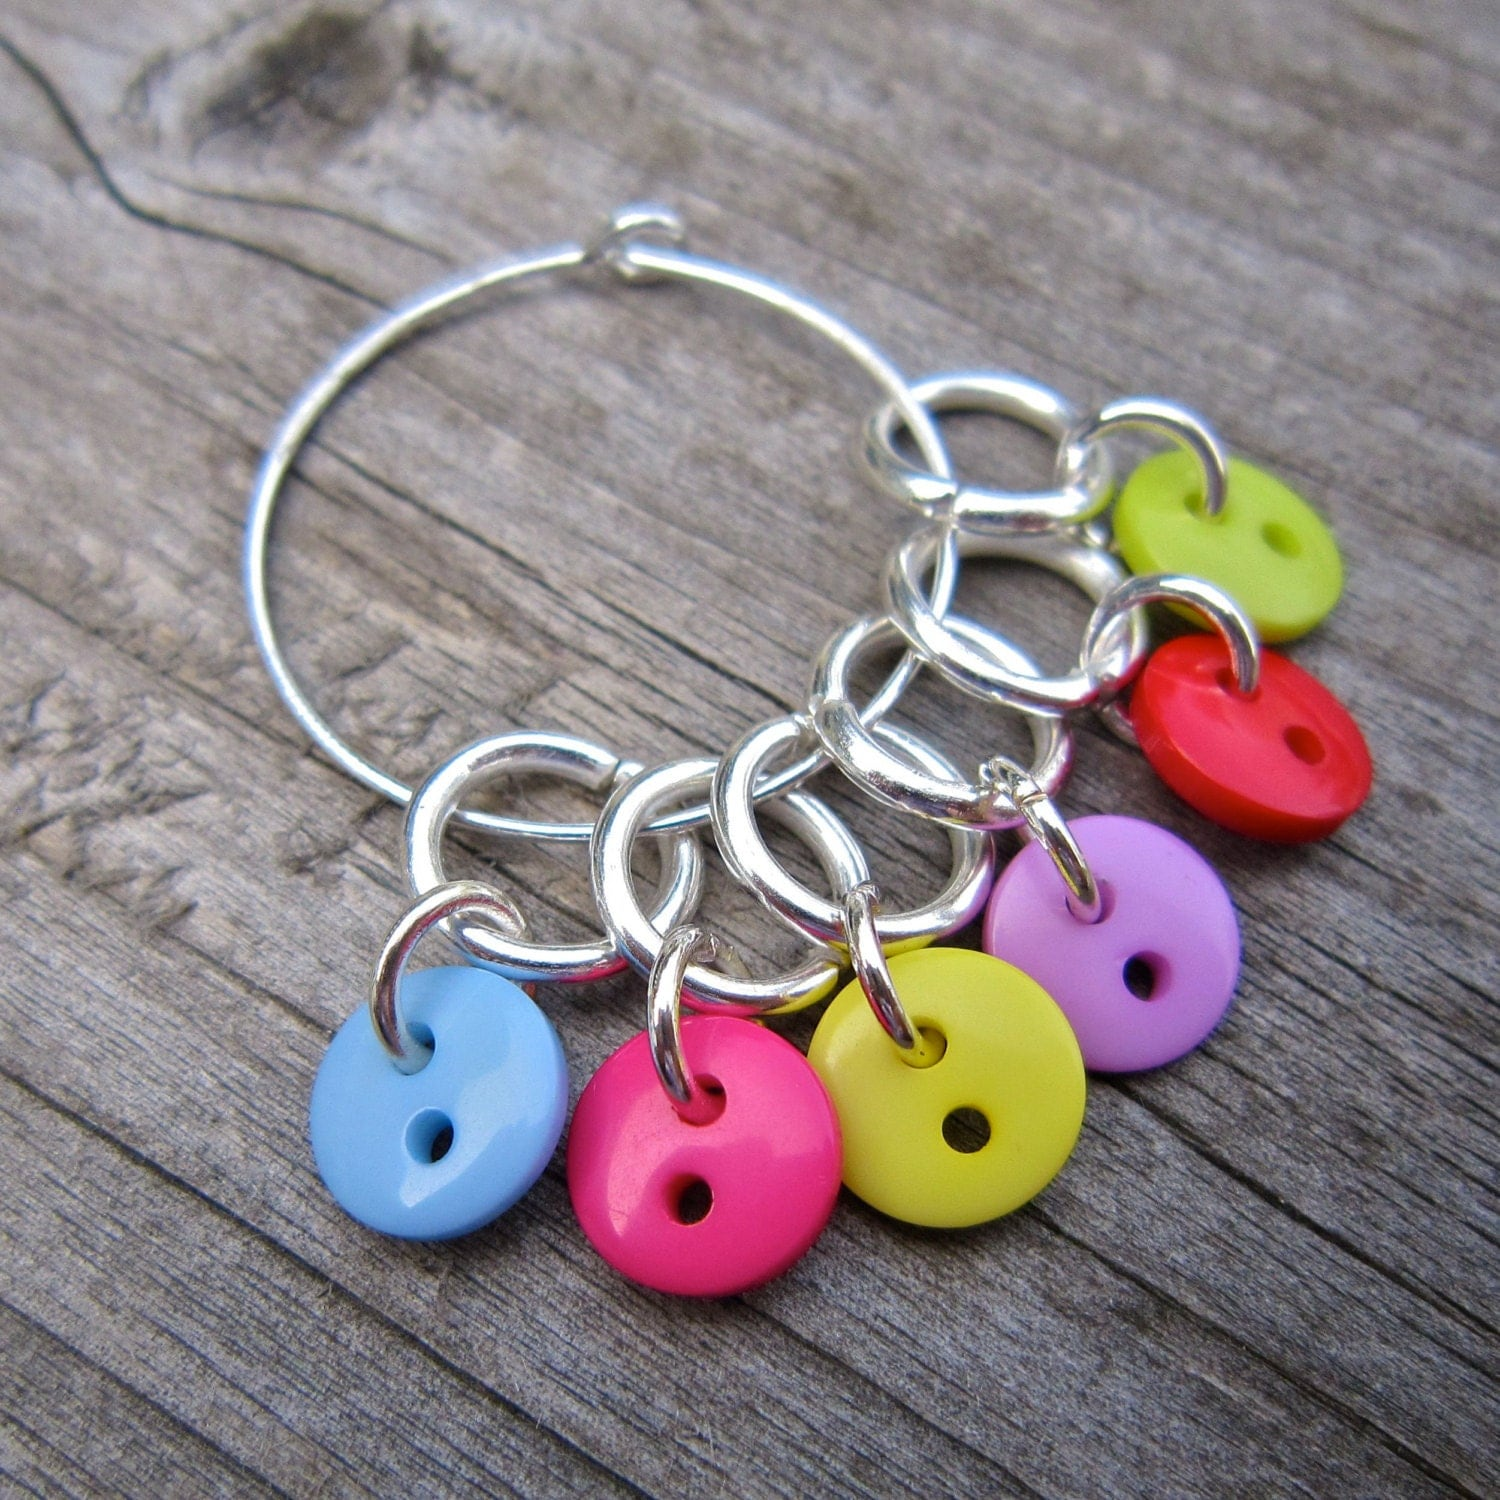 Knitting Markers Etsy : Button stitch markers cute and colourful from